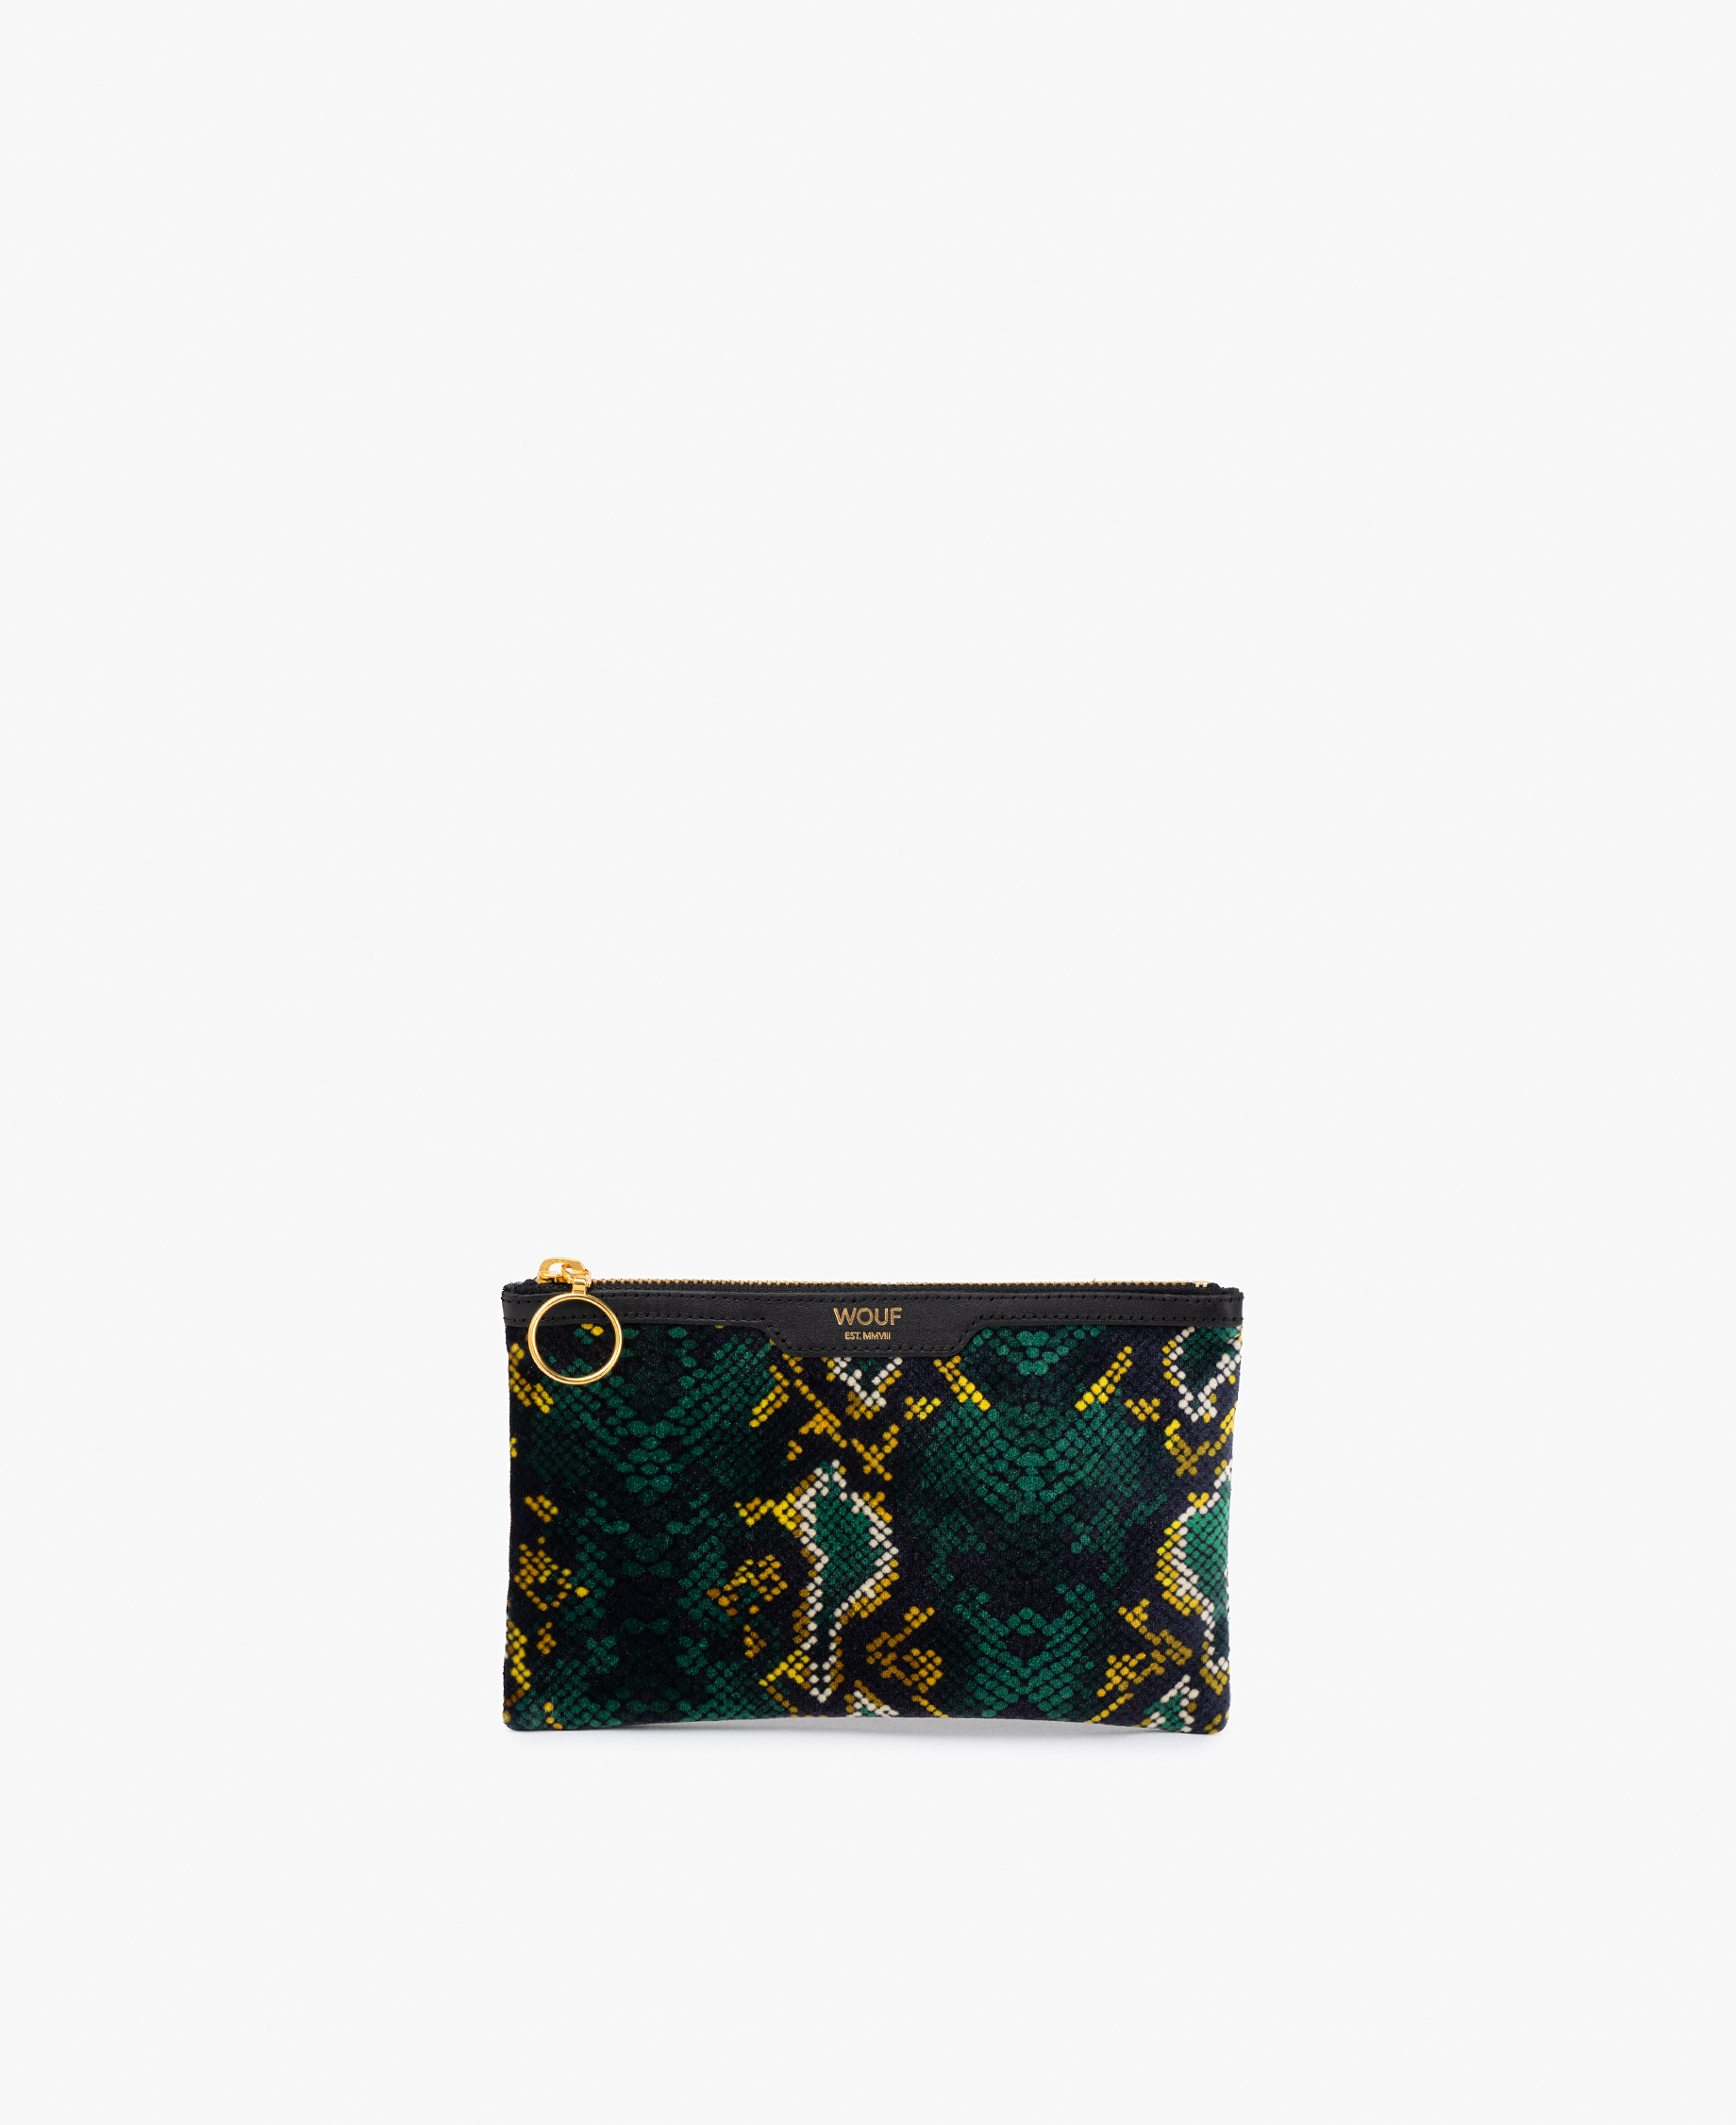 Snakeskin lady clutch